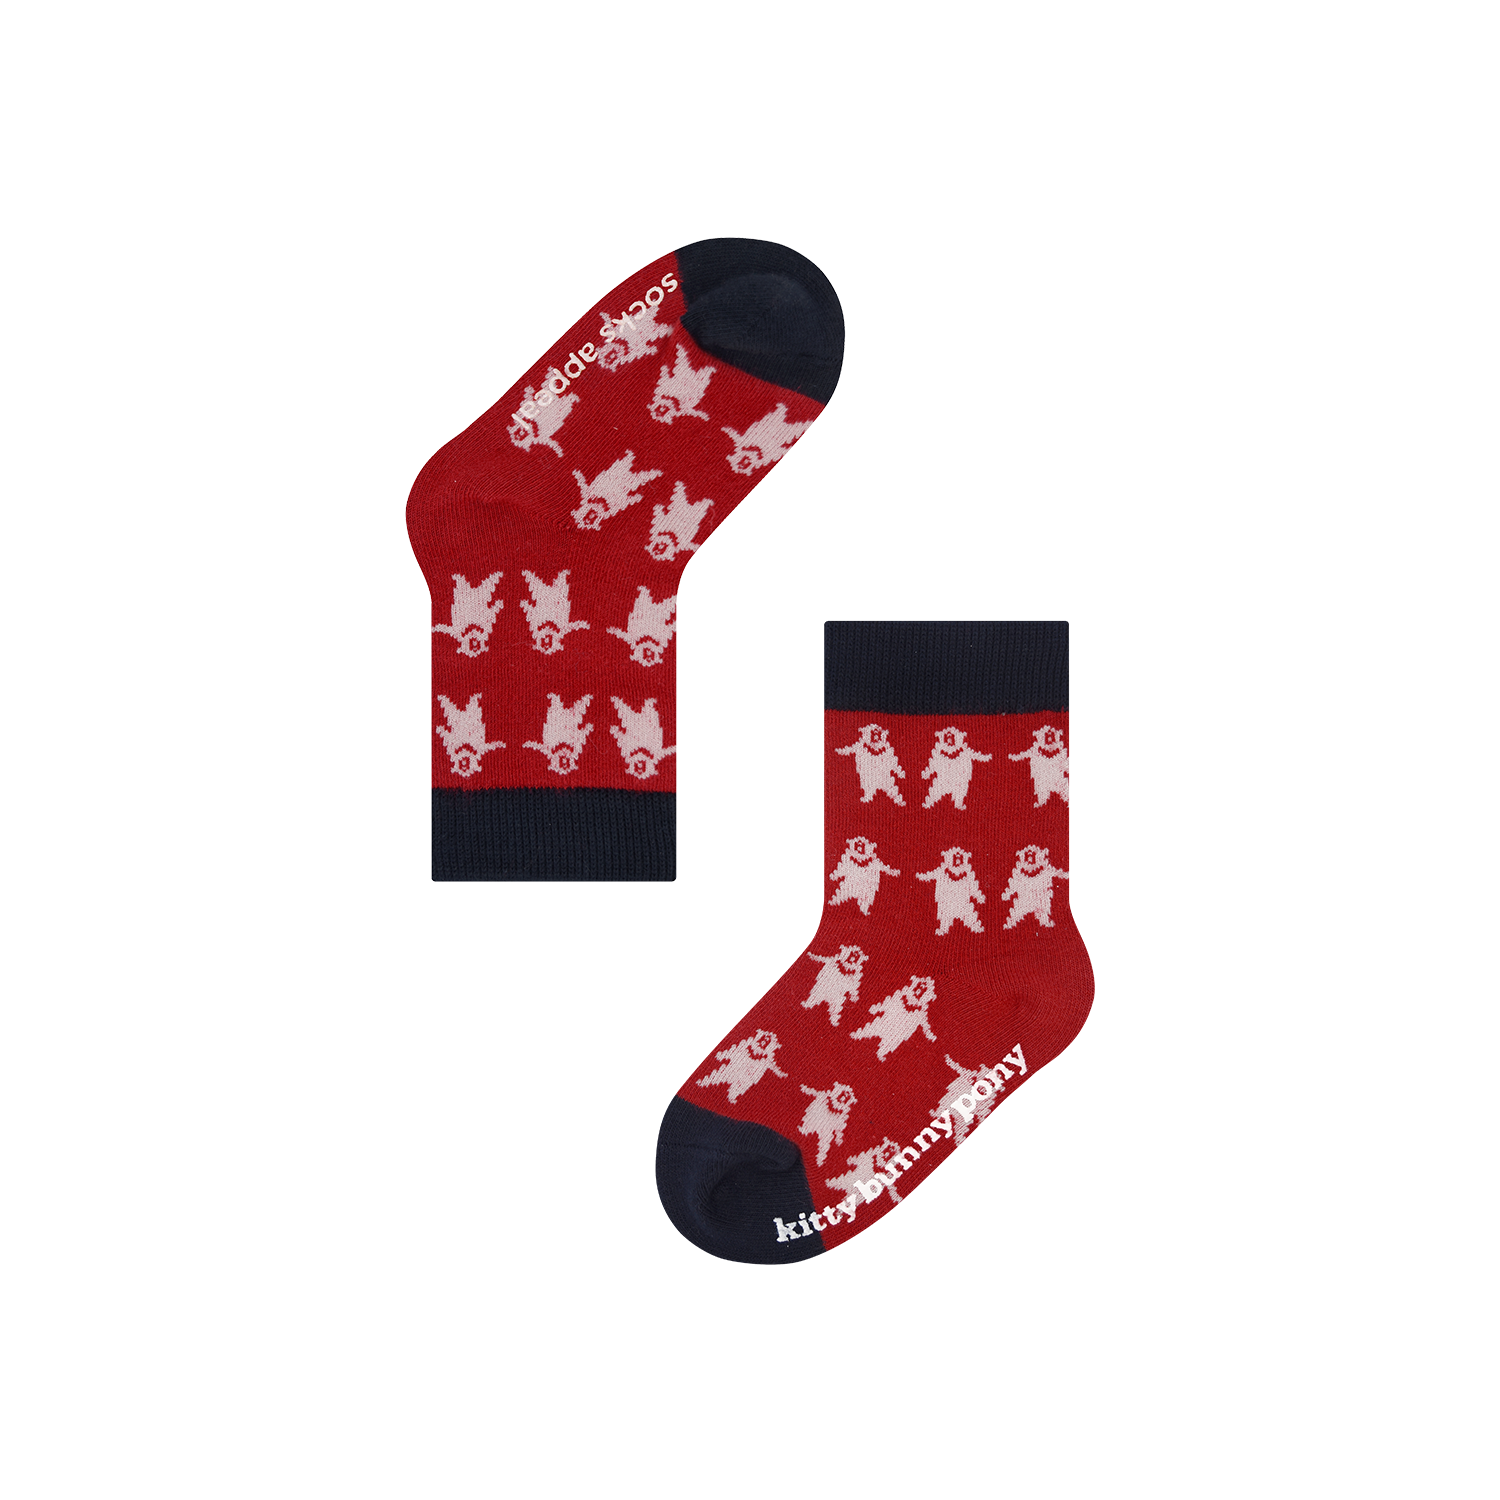 KBP X Socks Appeal CBB Red Baby Socks